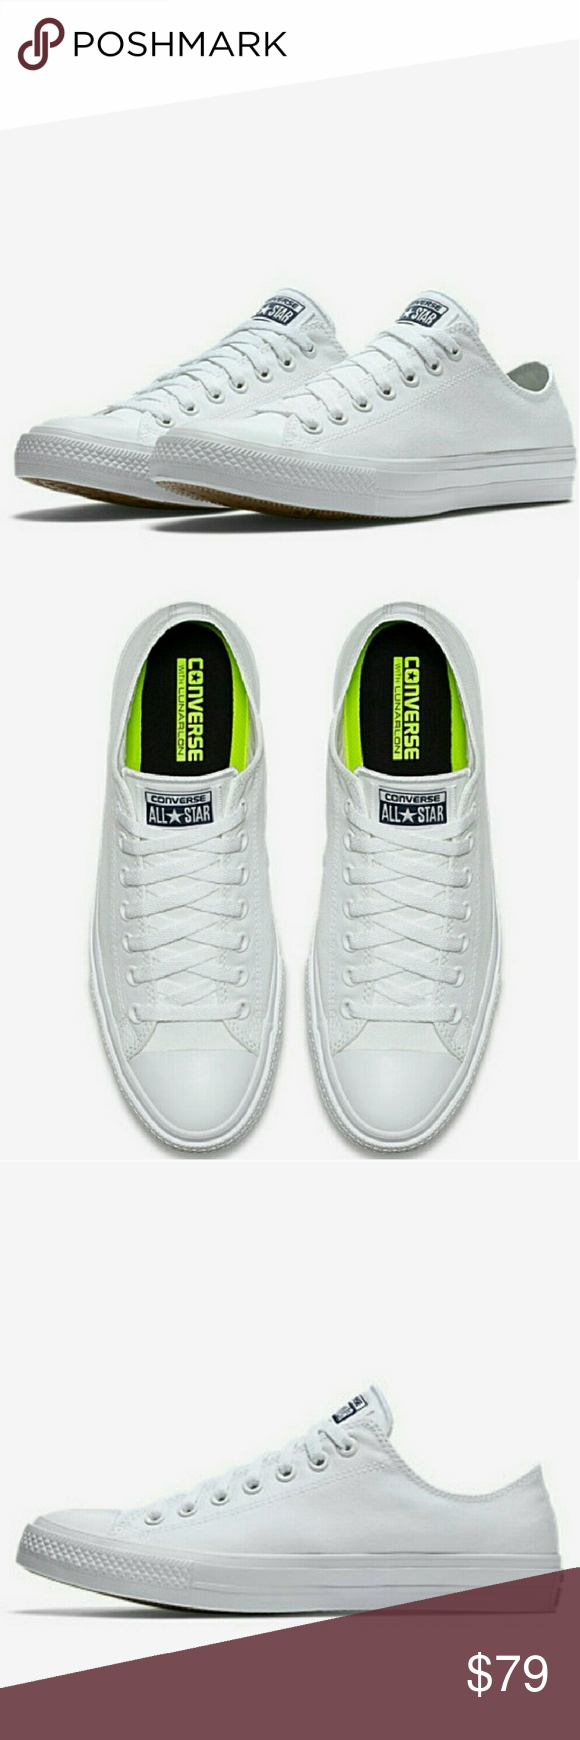 cf97a524f3097 NWT Converse Chuck 2 White Low Top Nike Lunarlon - Brand New in box - Great